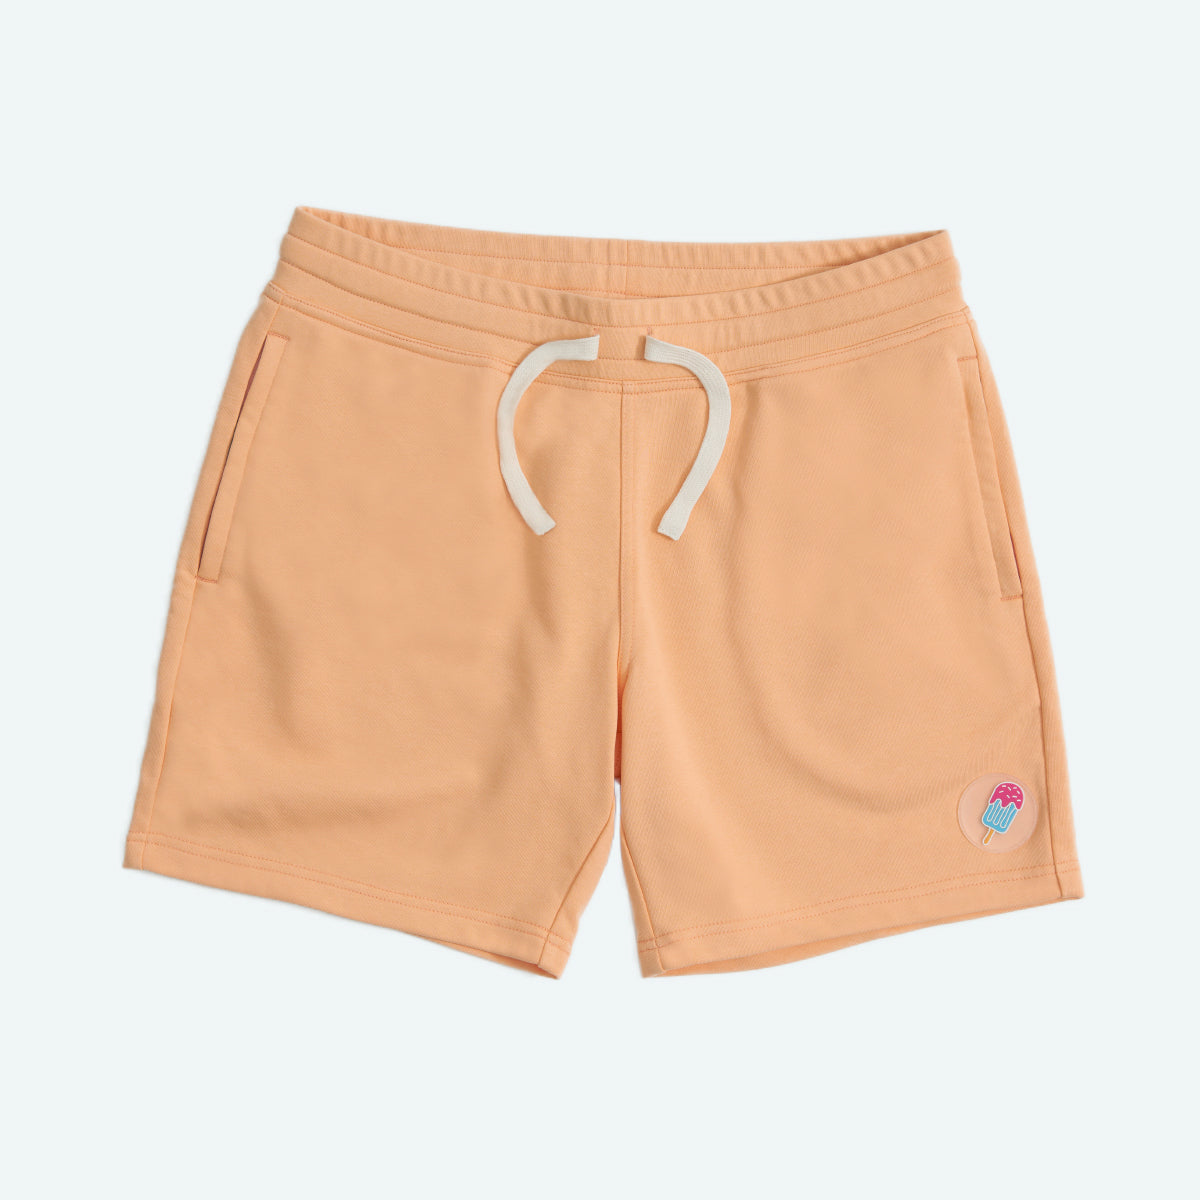 "7"" Popsicles Lounge Shorts"